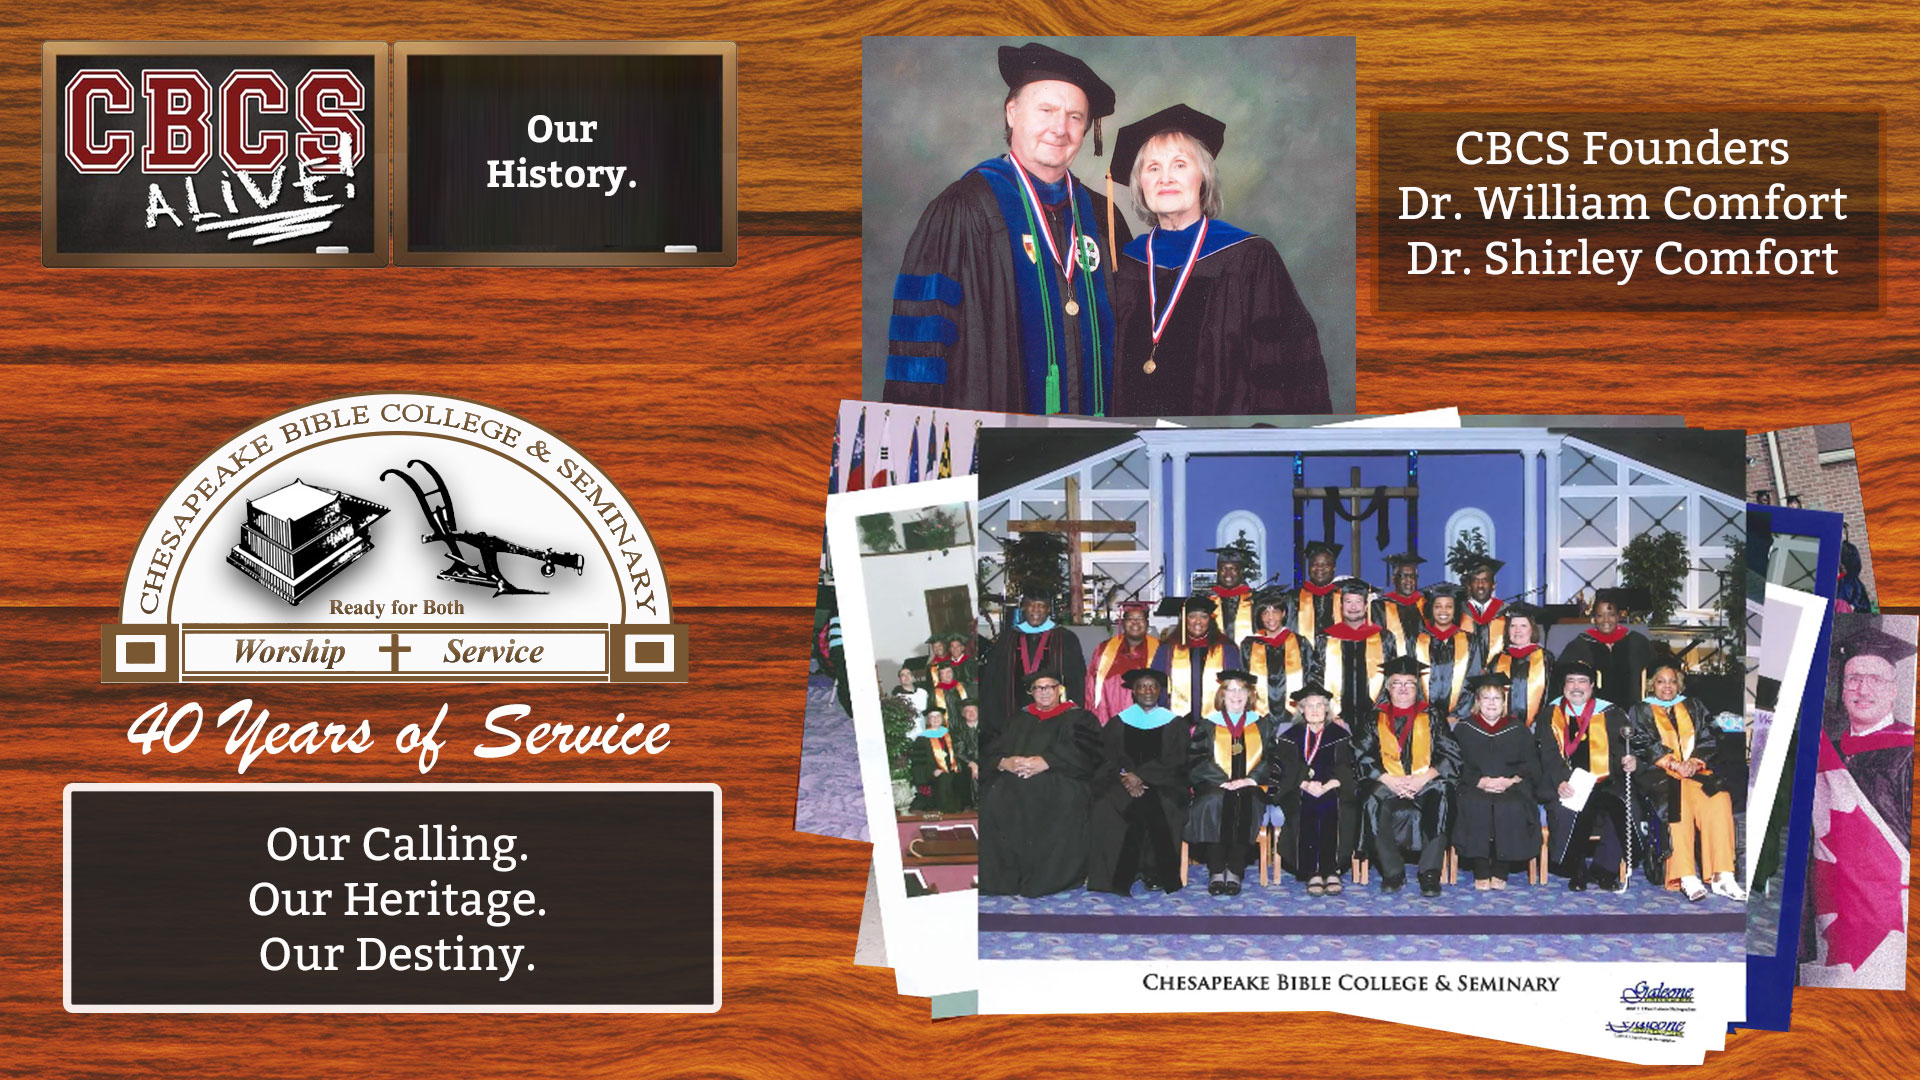 Chesapeake Bible College & Seminary - Out History